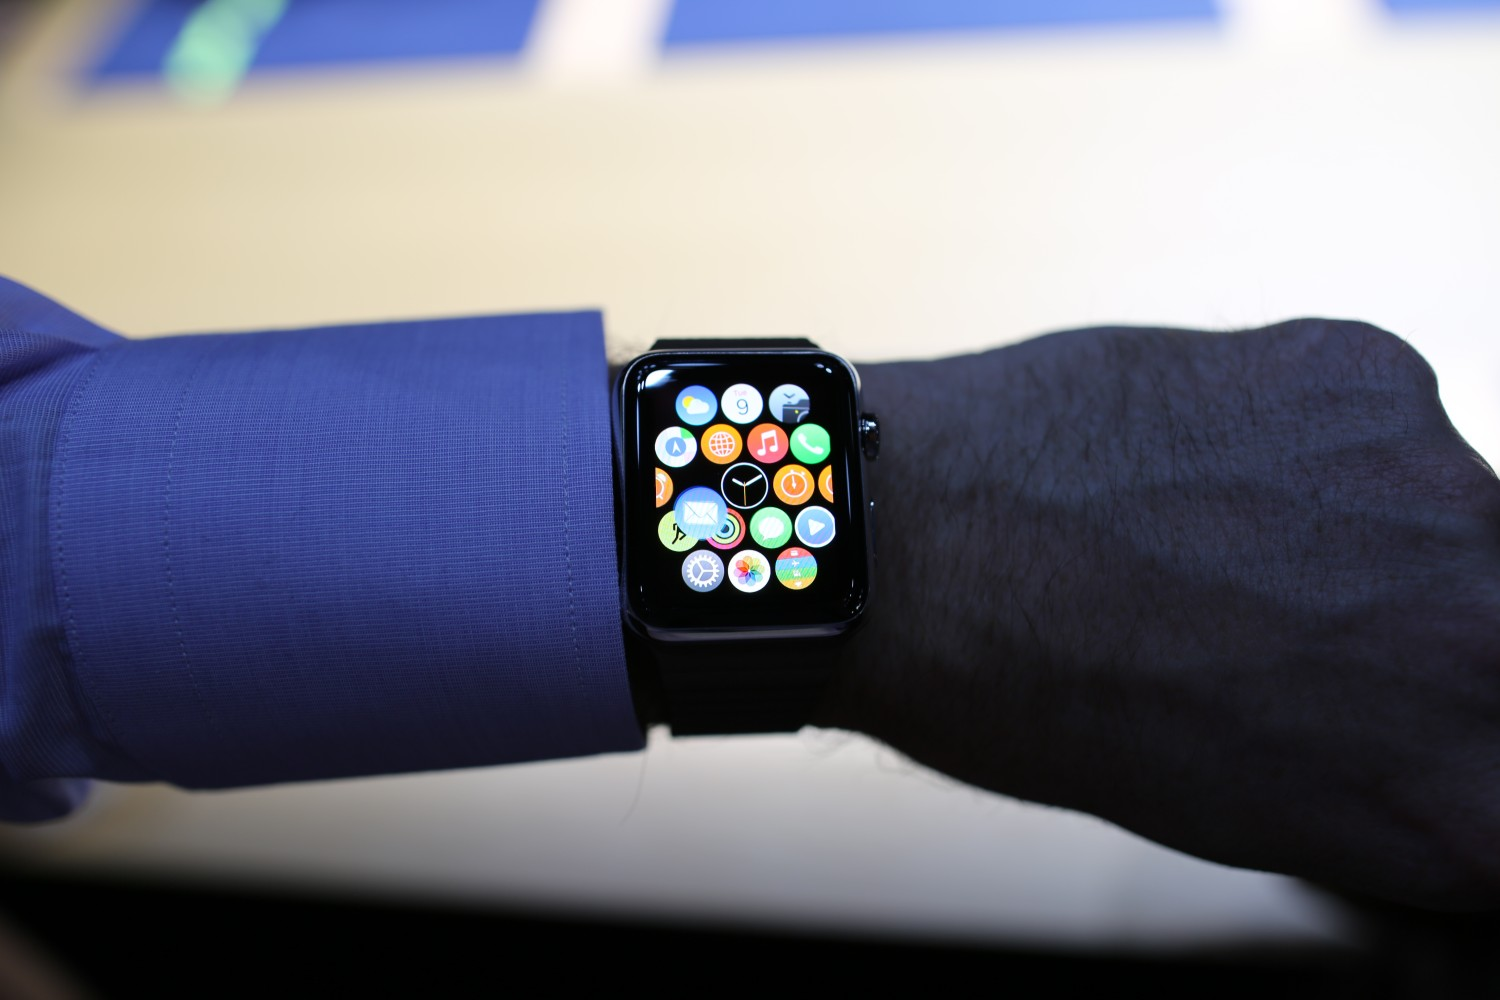 Hands On With the Apple Watch, Sort of